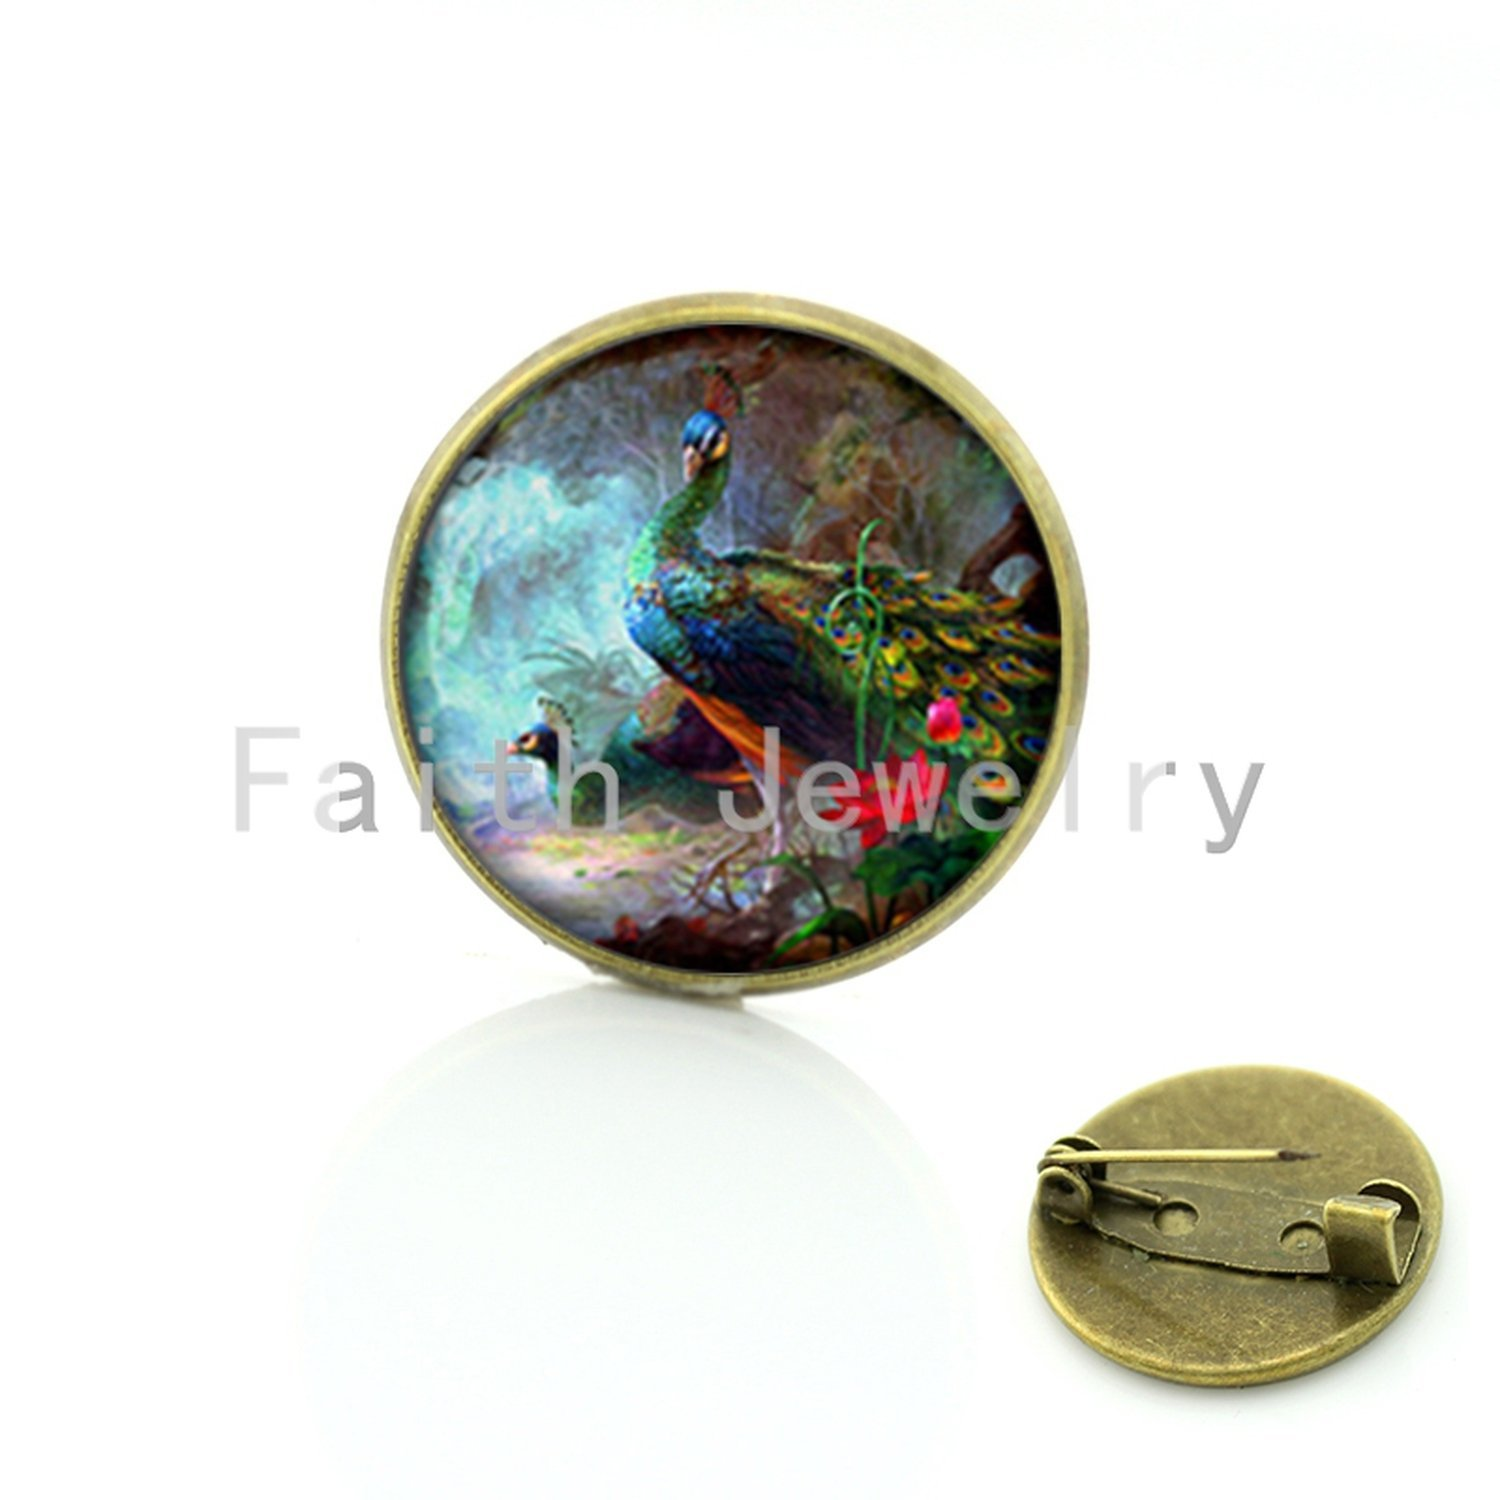 Vintage Woman Animal Brooch Glass Dome Art Picture Birds Brooches Pins For Suit Sweater Carves,11